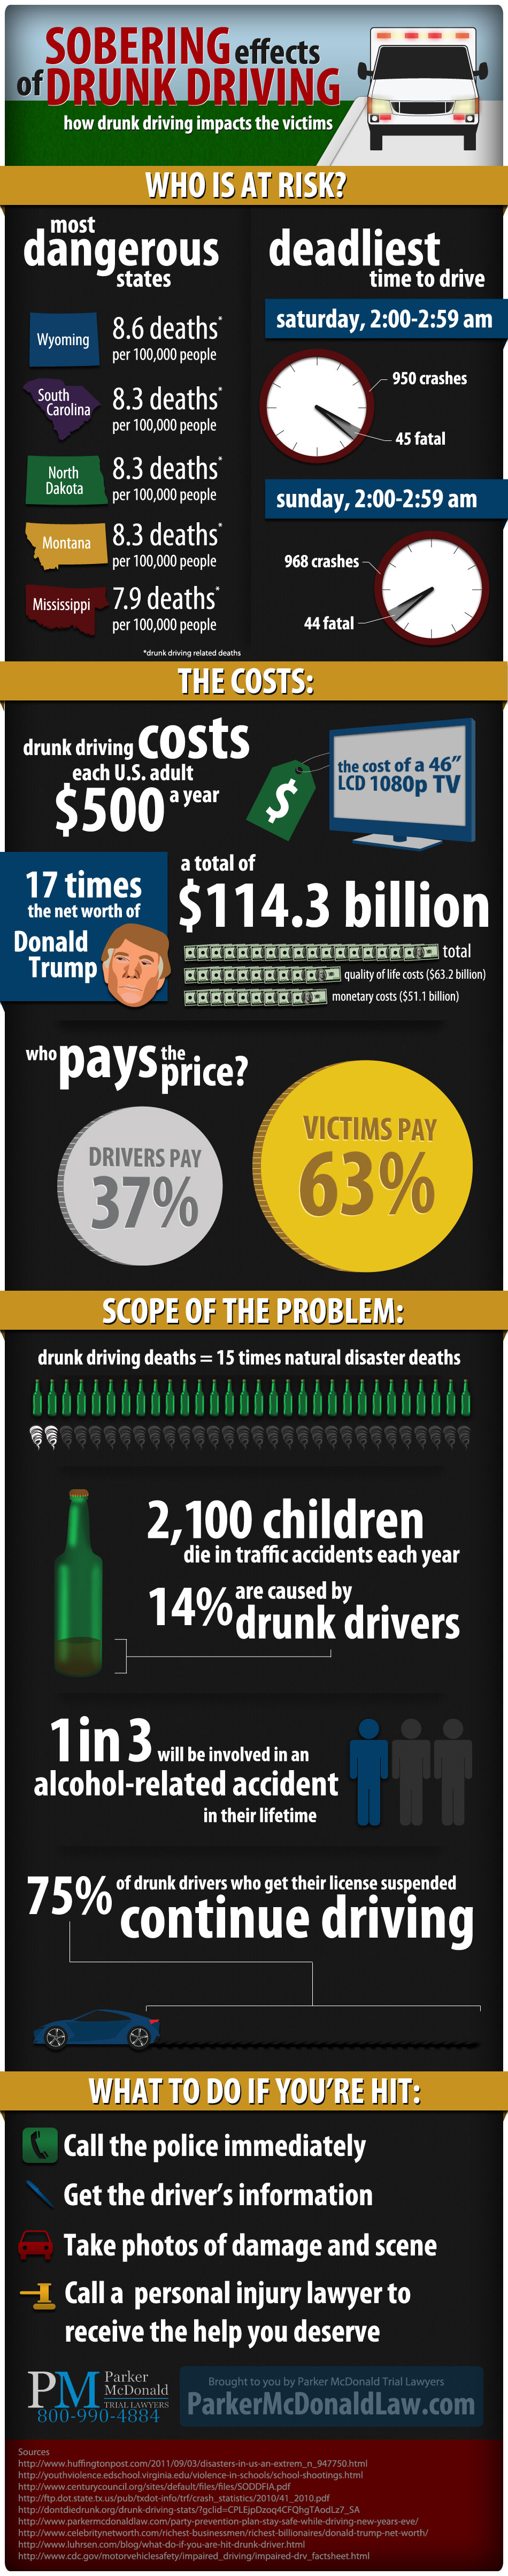 Sobering Effects of Drunk Driving